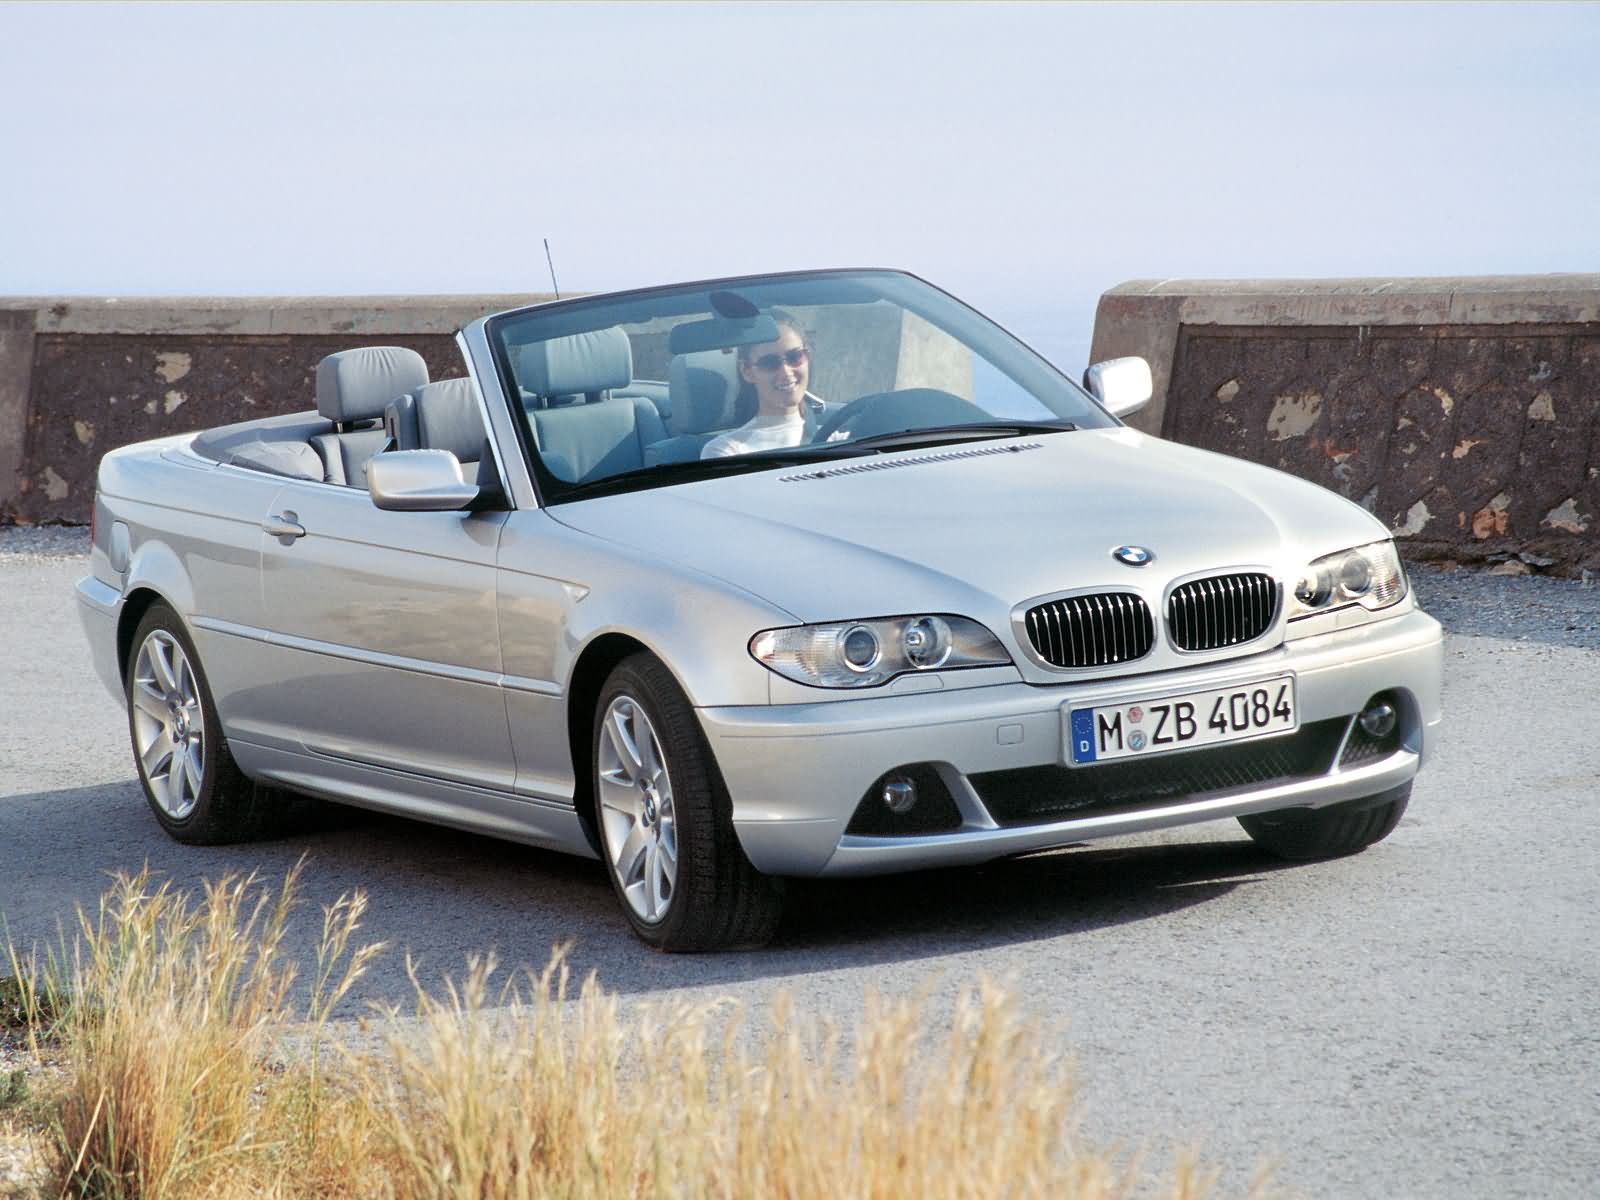 bmw 3 series e46 convertible picture 15837 bmw photo. Black Bedroom Furniture Sets. Home Design Ideas